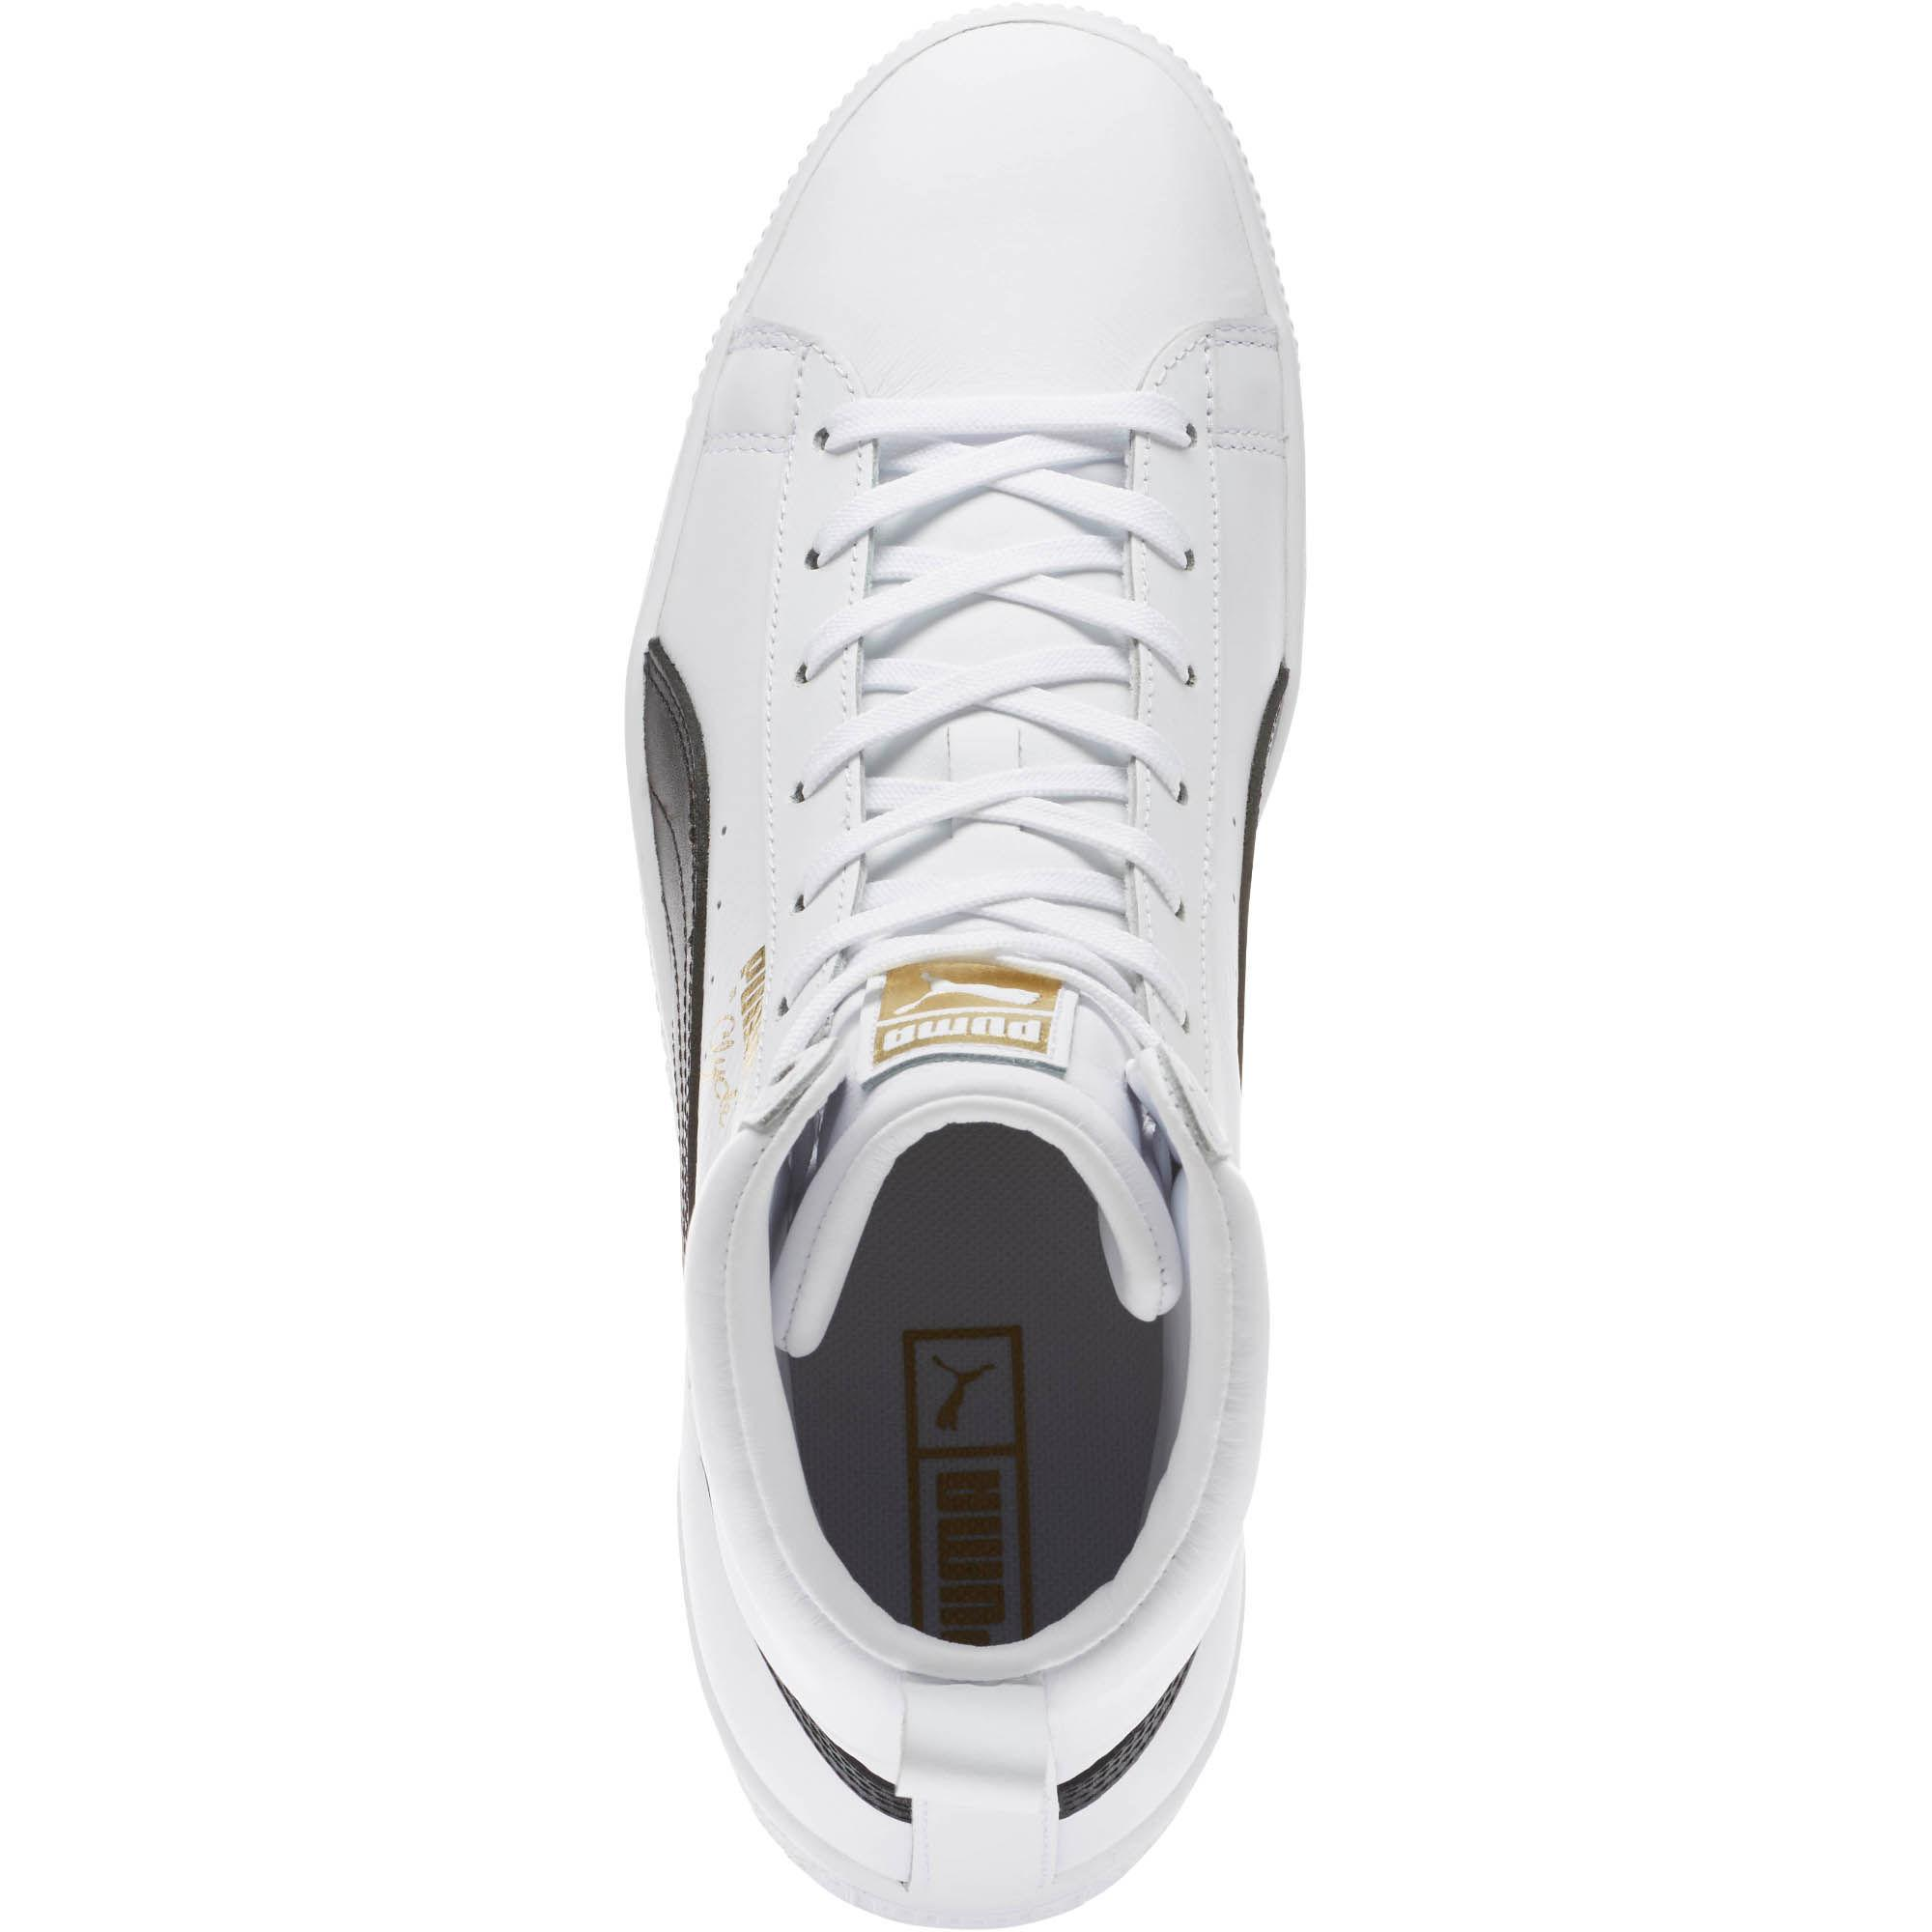 0e69af724587 Lyst - PUMA Clyde Core Mid Sneakers in White for Men